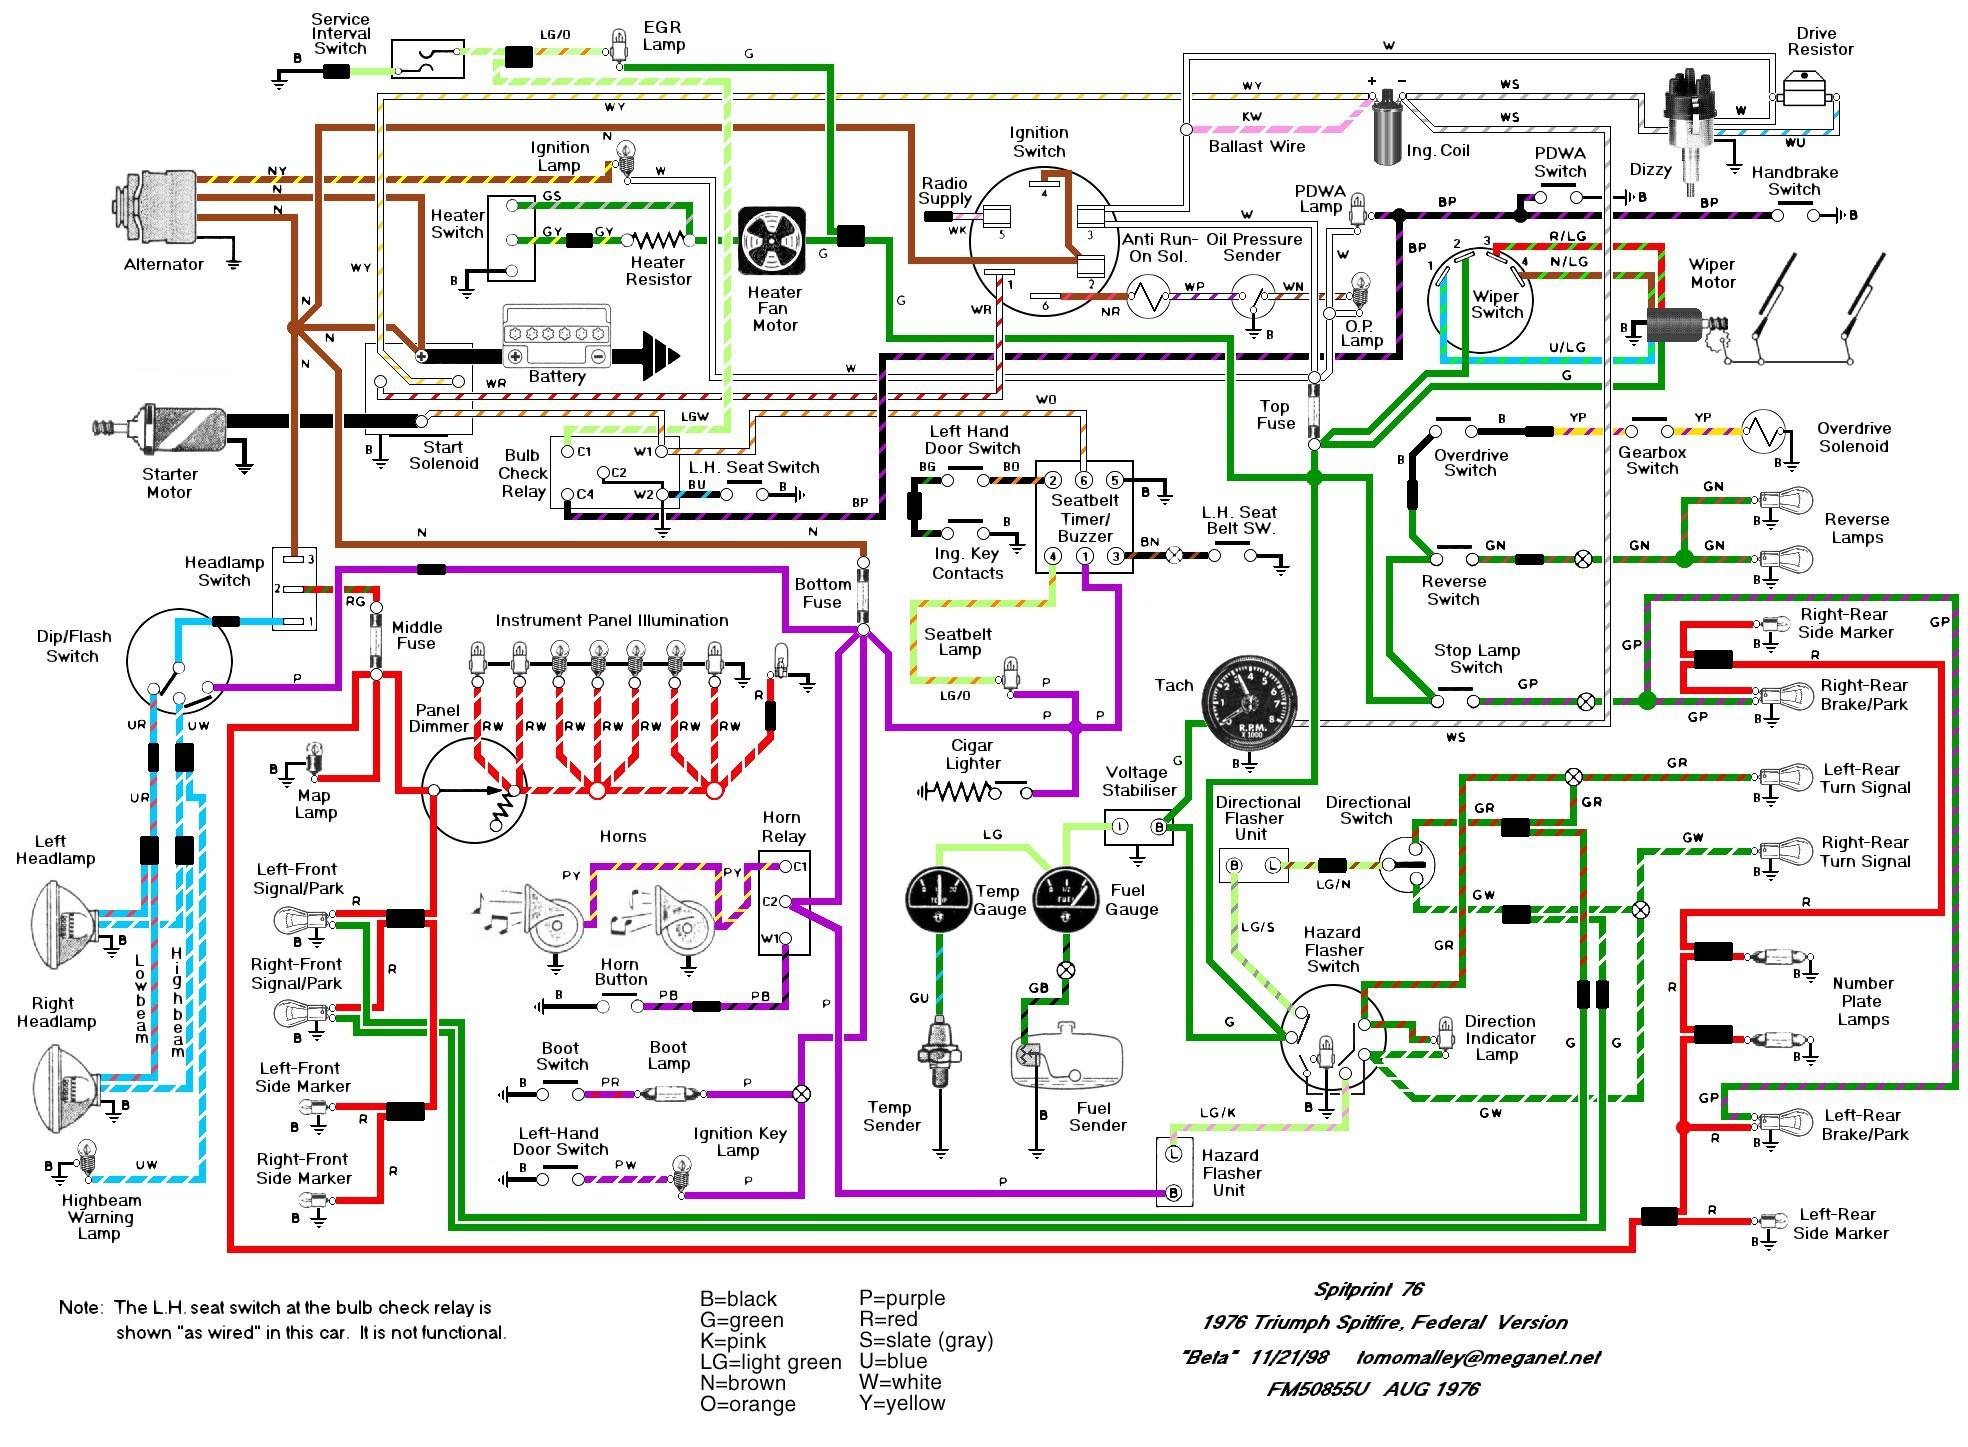 Electrical Wiring Problems In Jax Diagrams Types Trusted